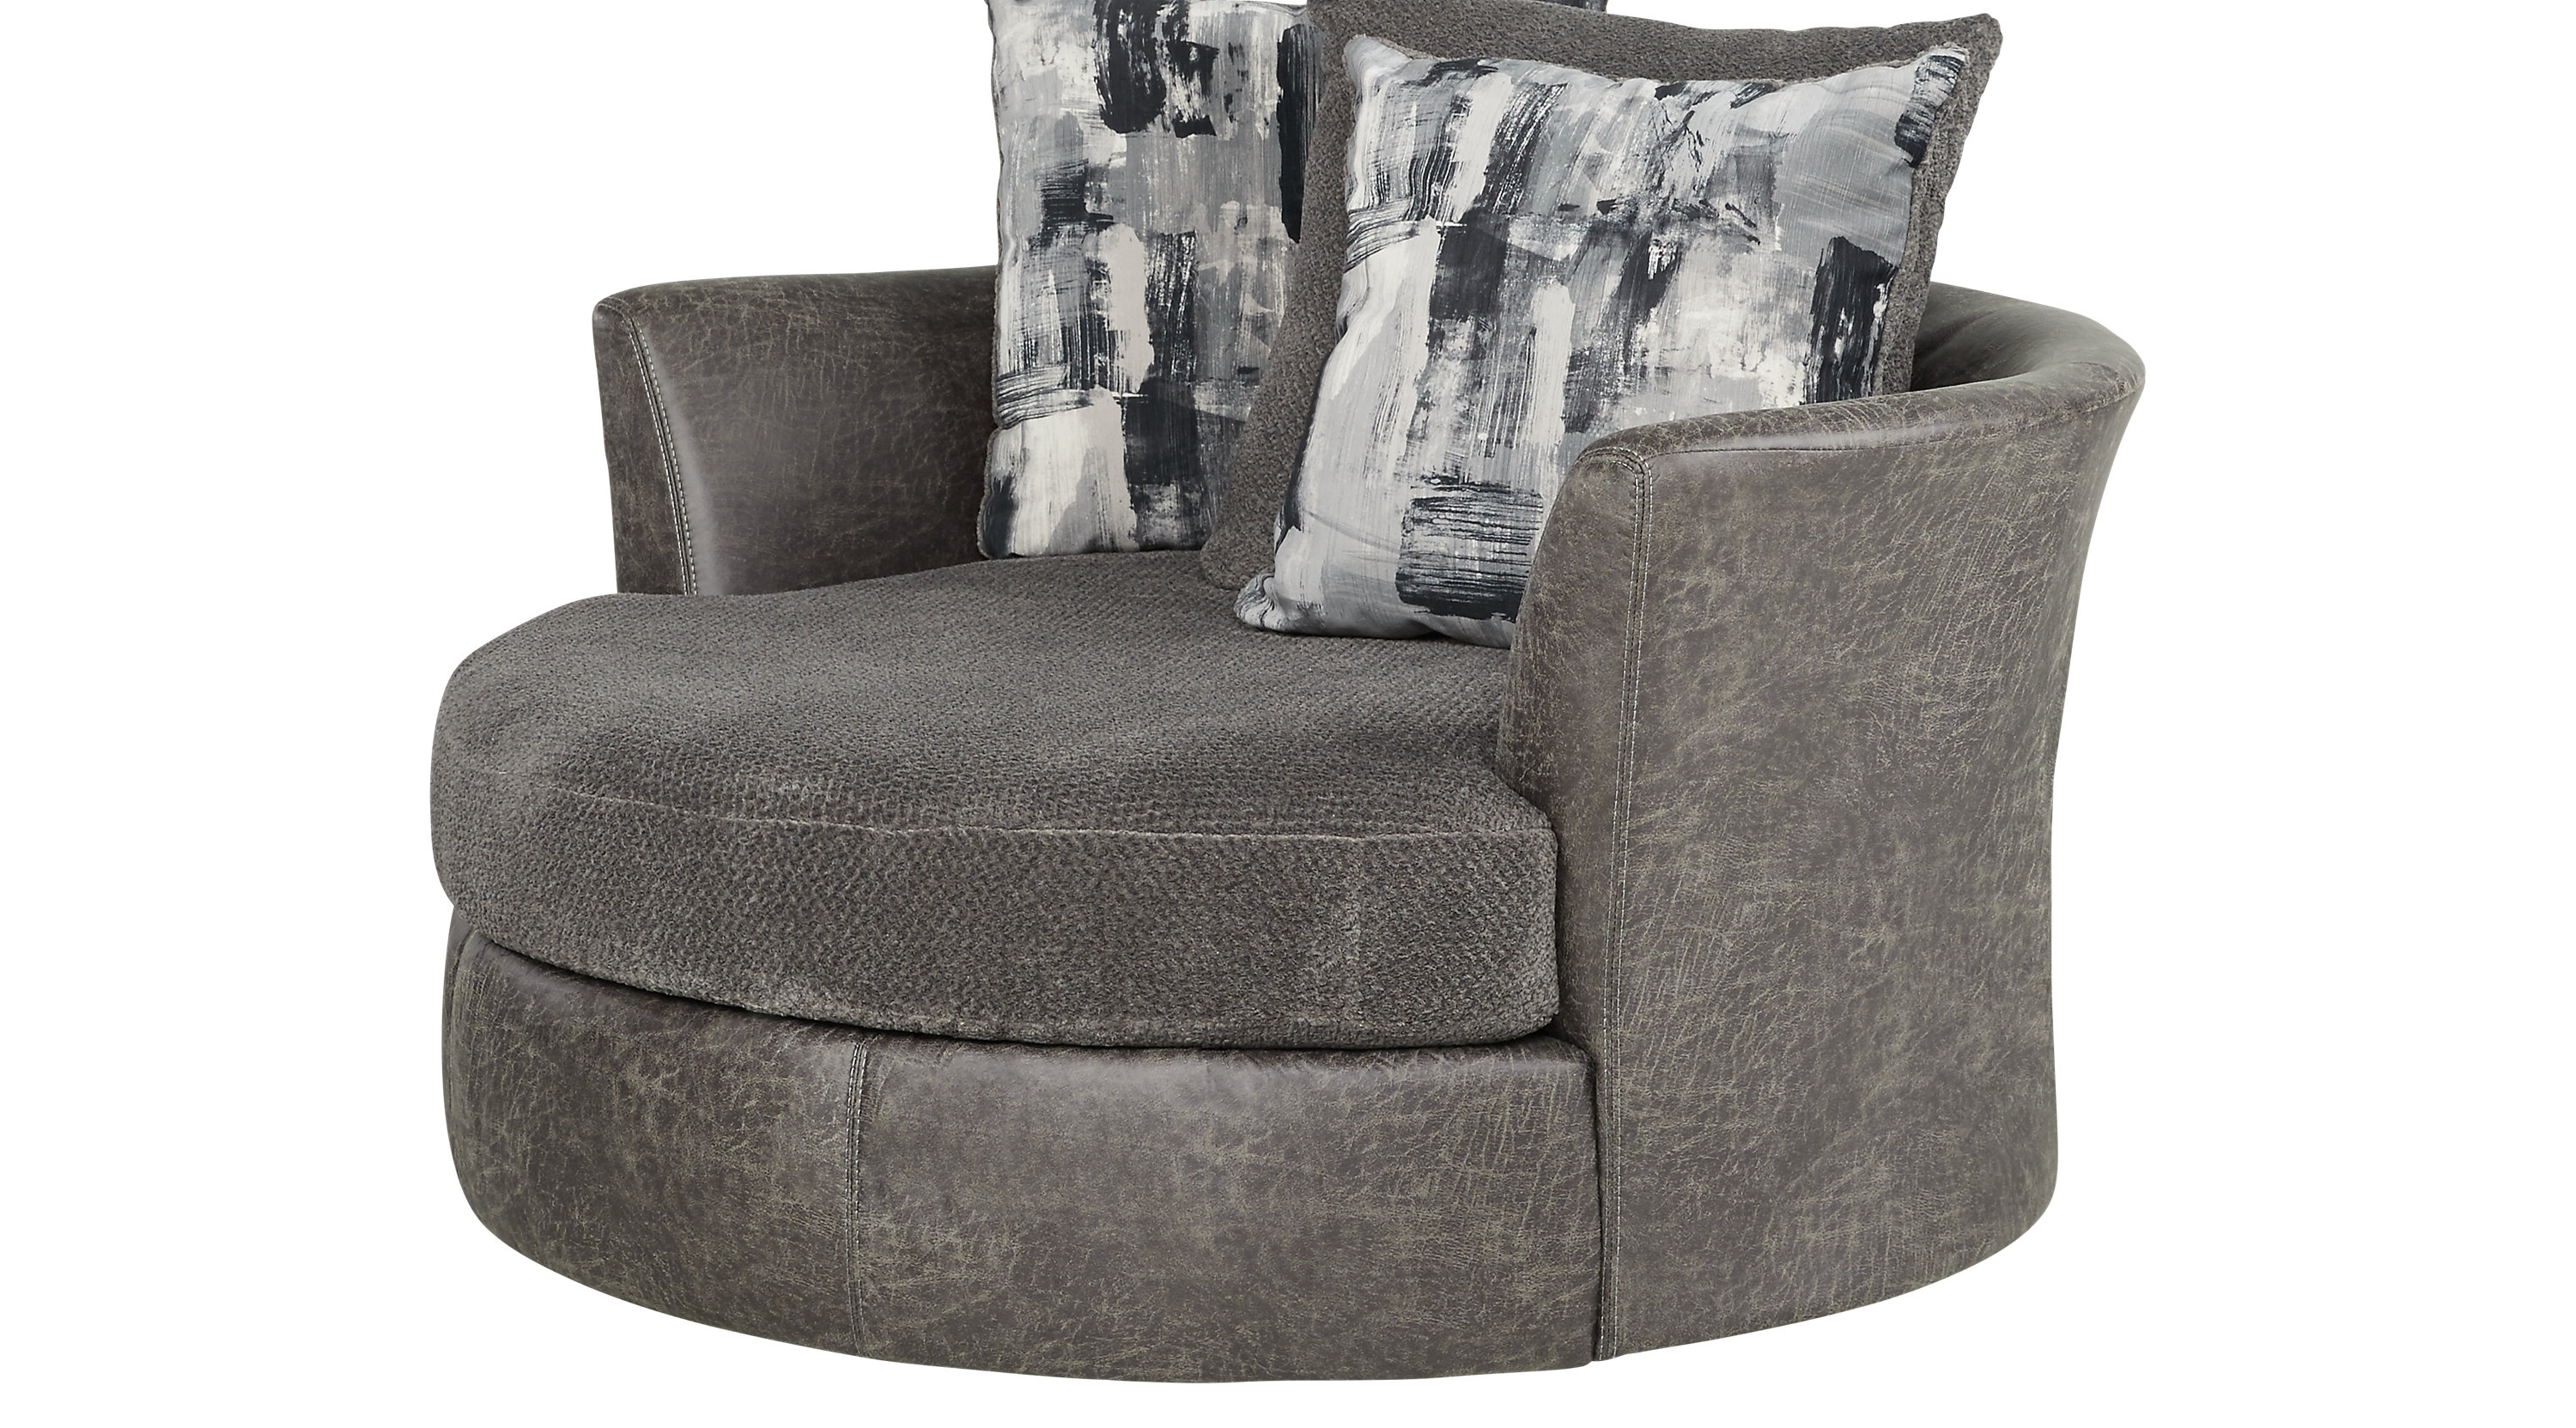 Widely Used Swivel Sofa Chairs Regarding Round Sofa Chair, Round Couch Chair (View 18 of 20)